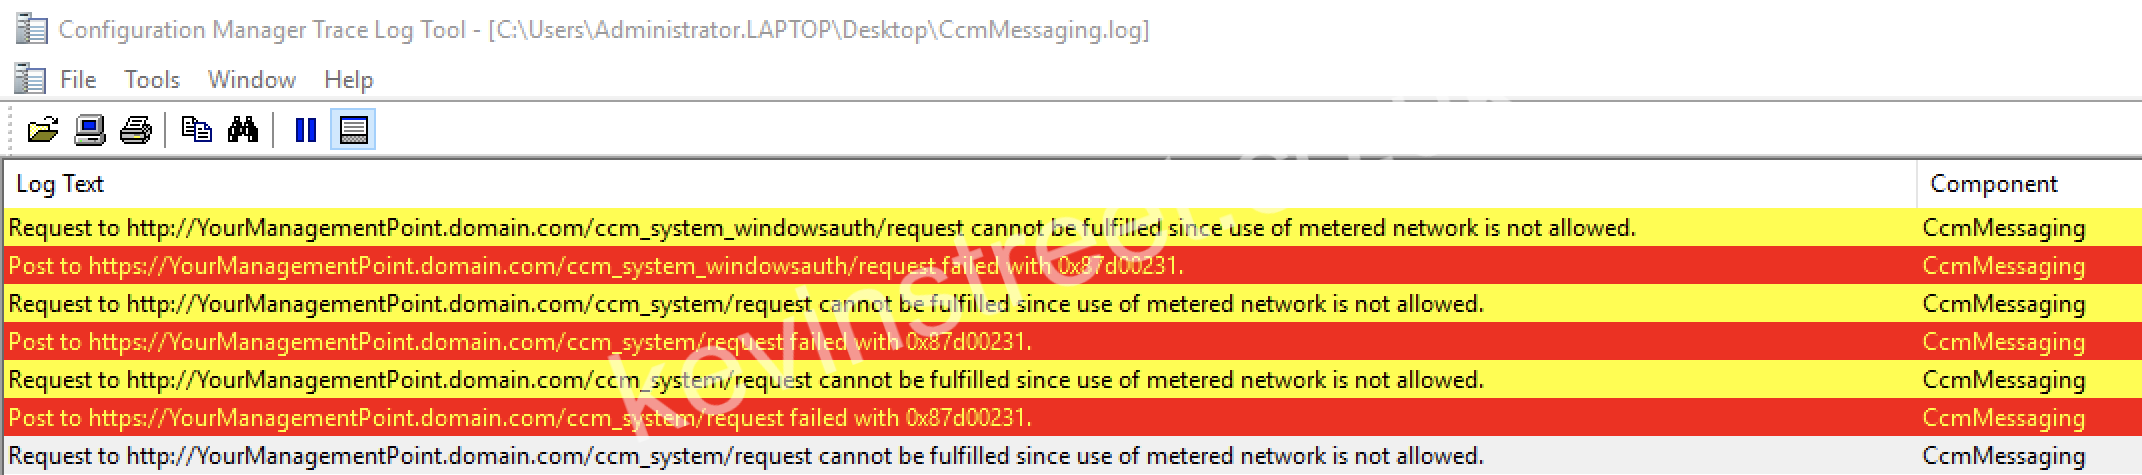 Request to http://YourManagementPoint.domain.com/ccm_system/request cannot be fulfilled since use of metered network is not allowed.